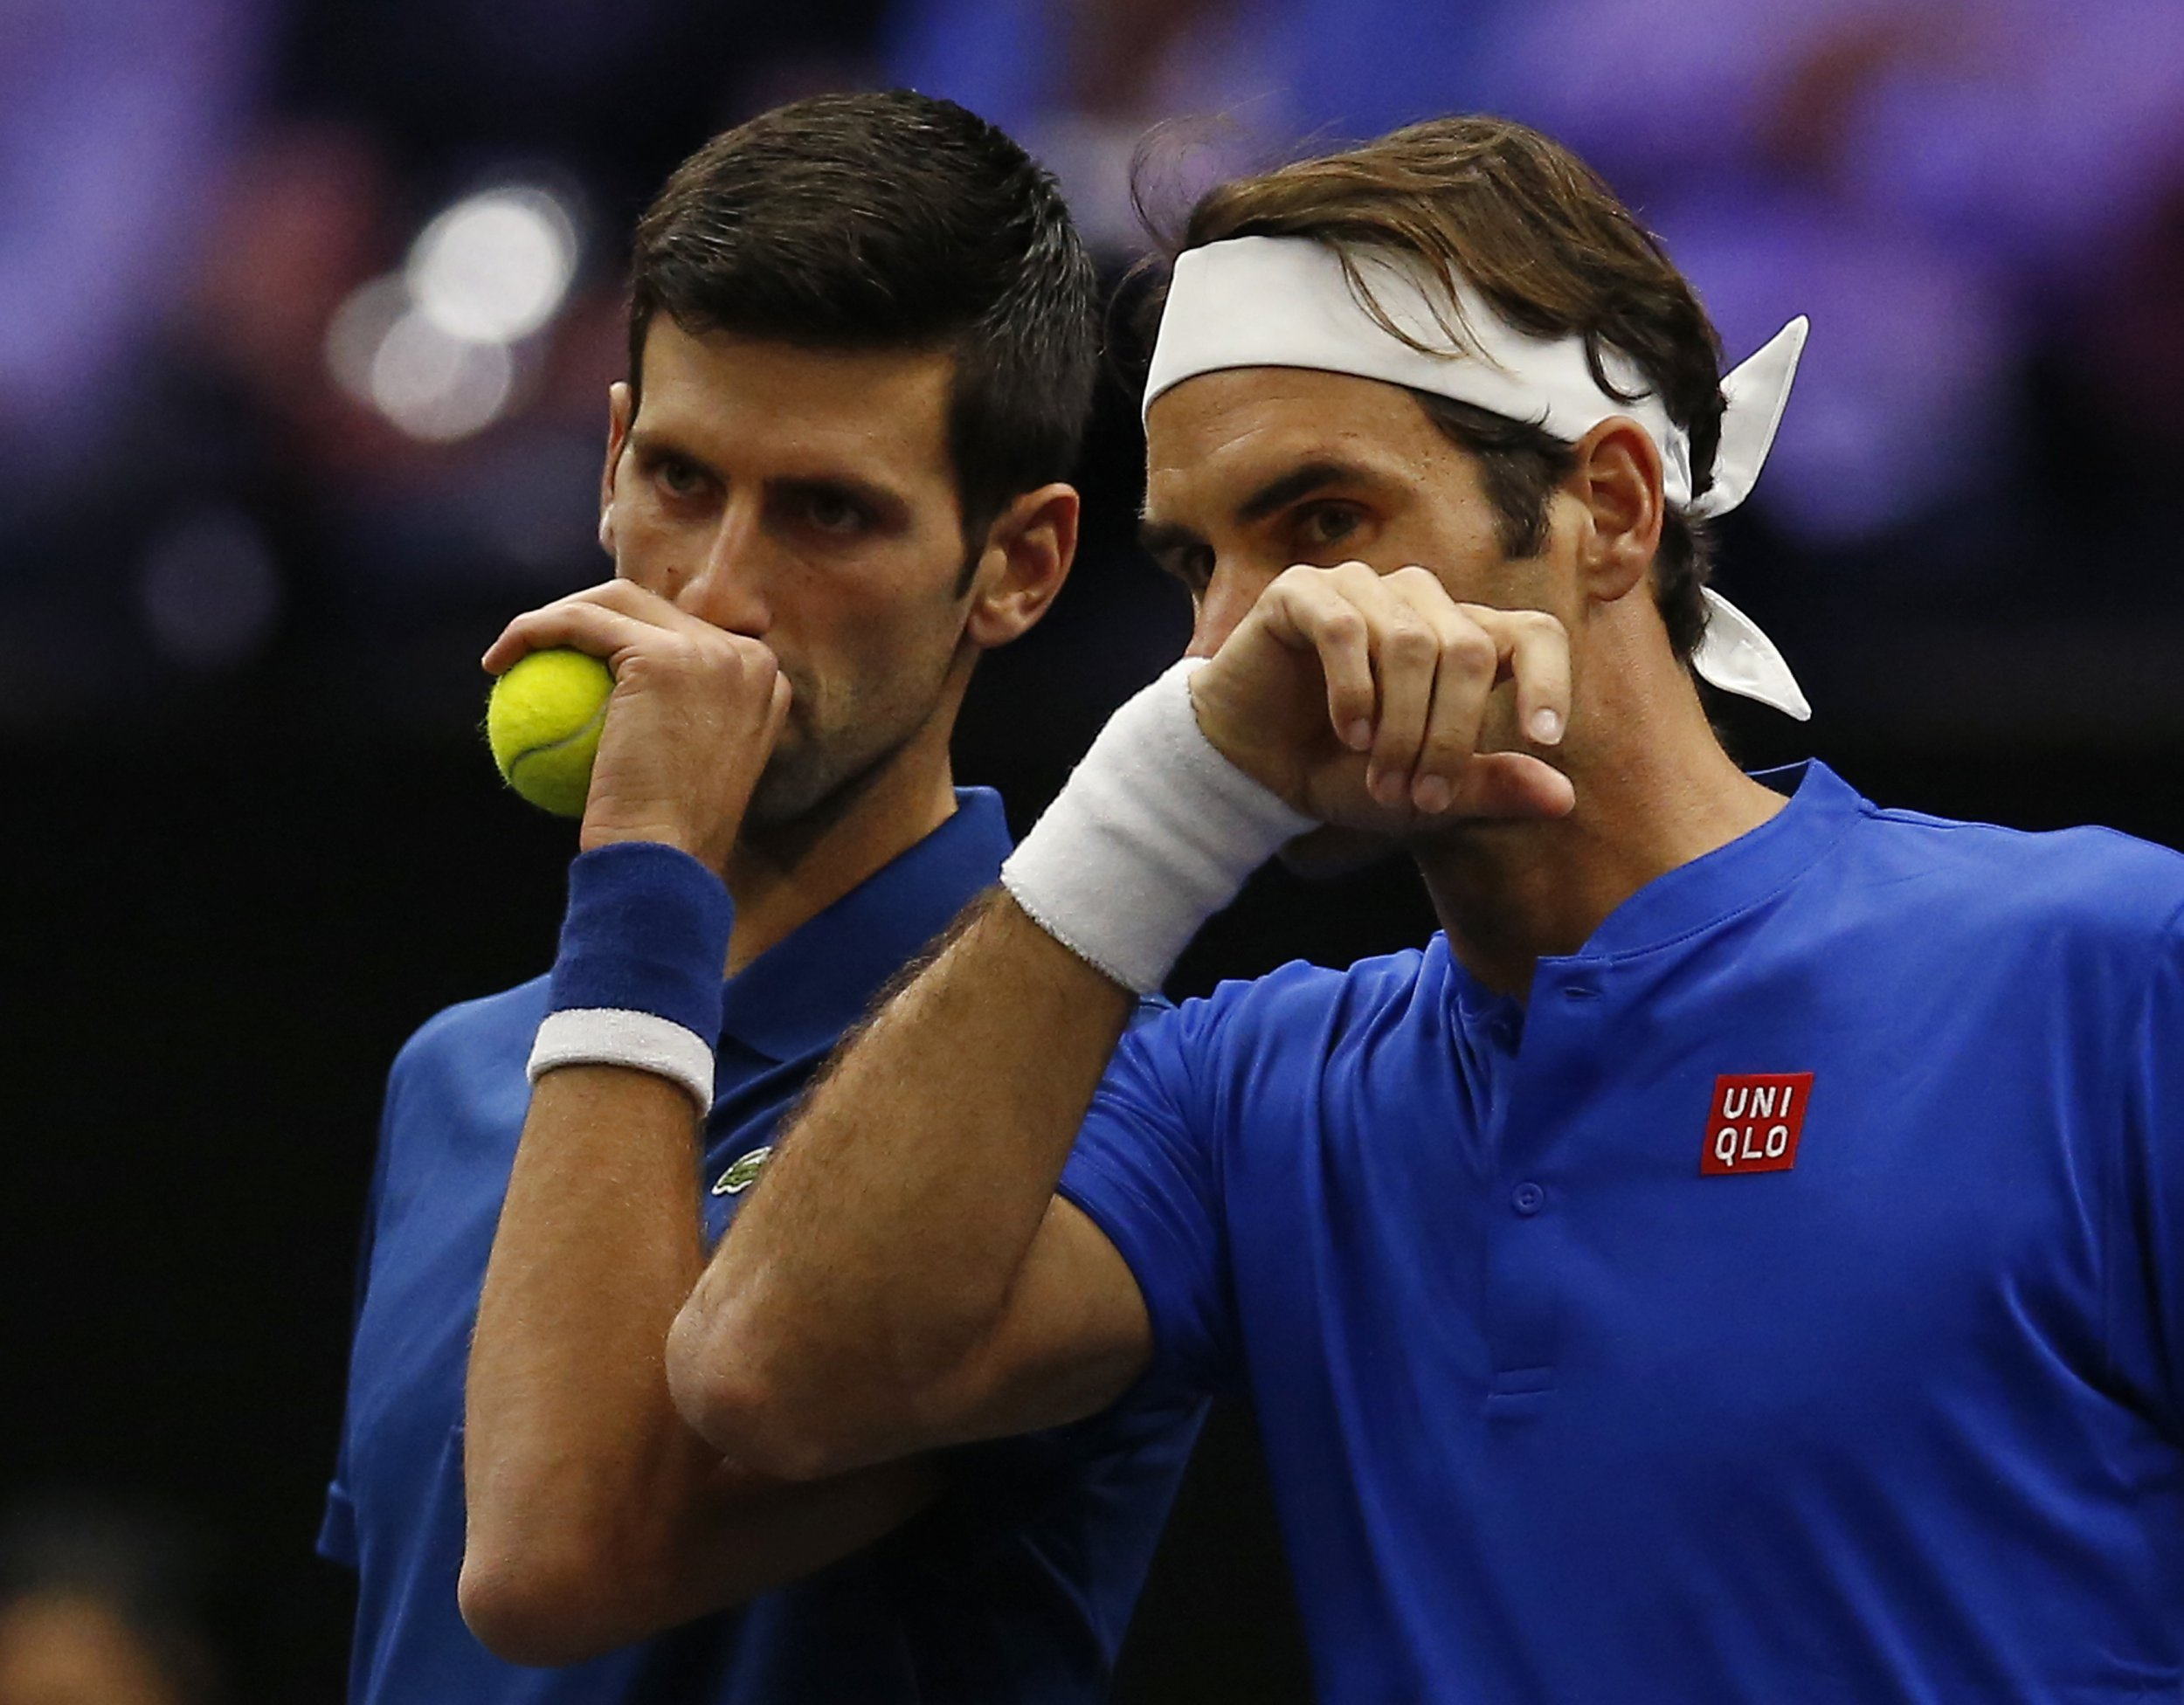 Team Europe's Roger Federer, right, whispers to Novak Djokovic during a men's doubles tennis match against Team World's Jack Sock and Kevin Anderson at the Laver Cup, Friday, Sept. 21, 2018, in Chicago. (AP Photo/Jim Young)